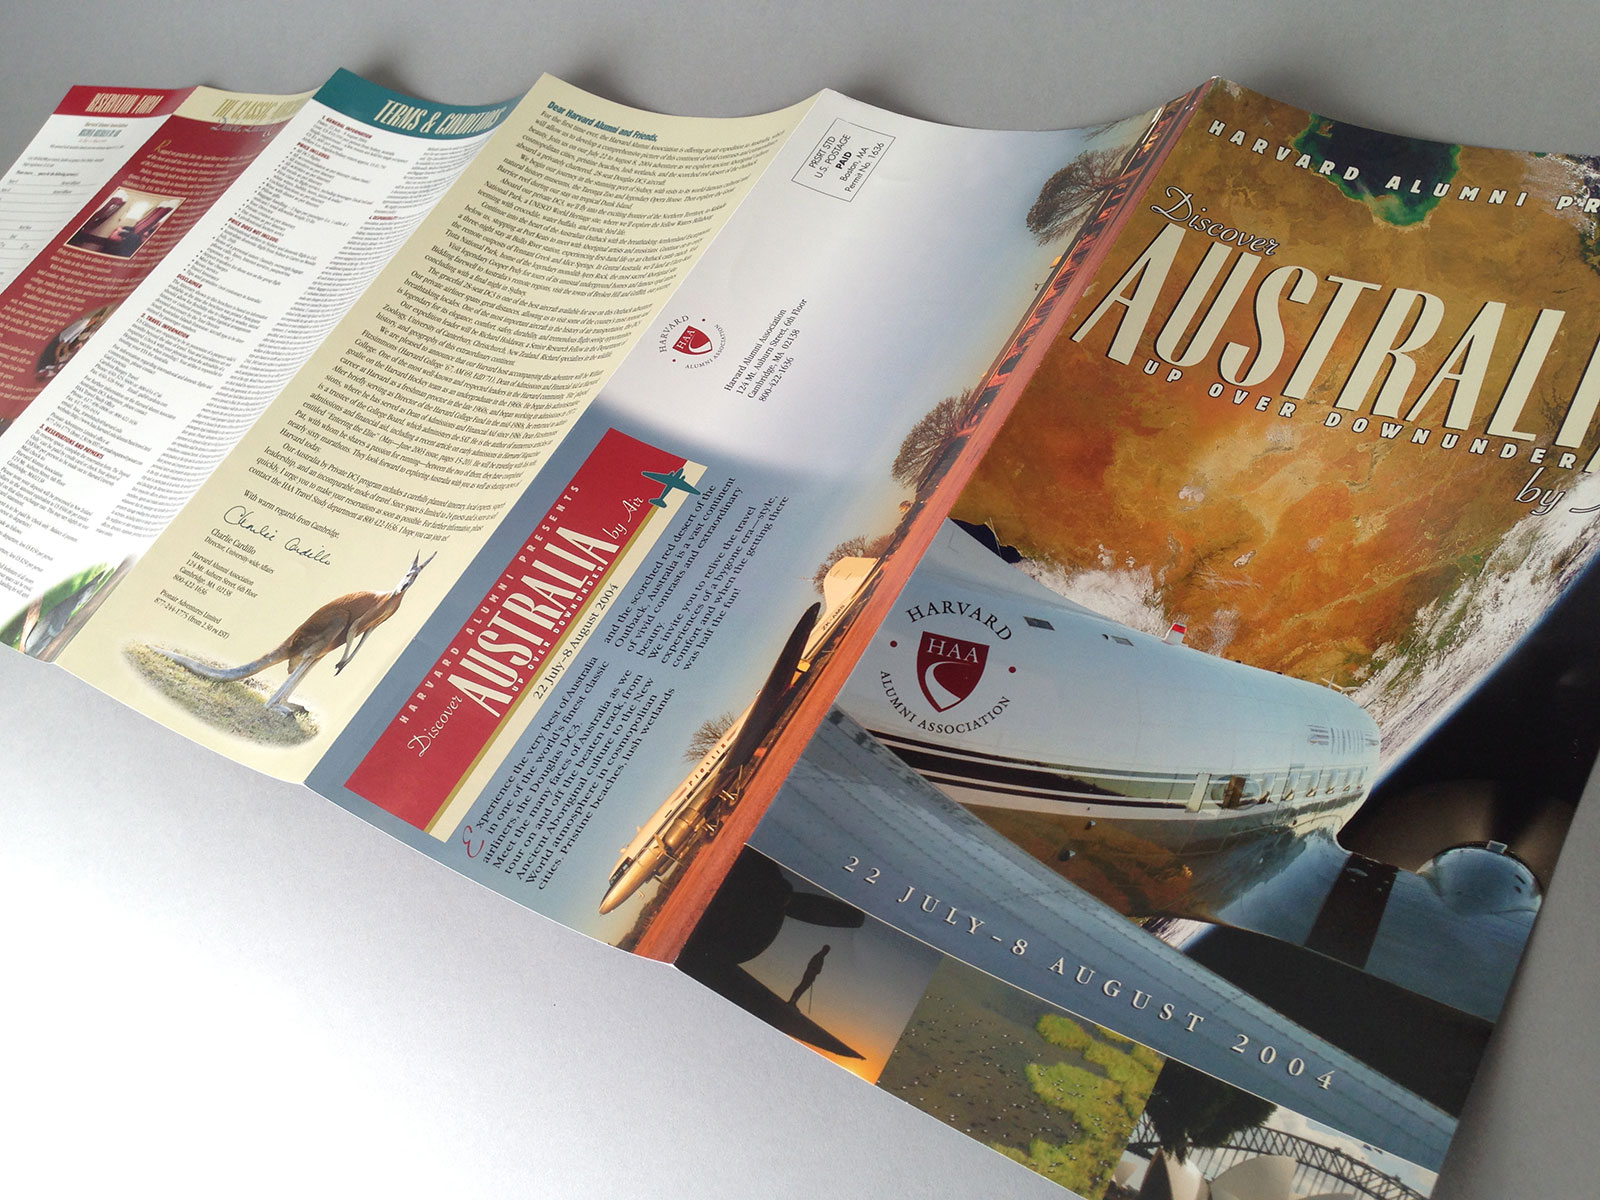 Pionair / Harvard Alumni Association 'Discover Australia by air' rollover 12-page brochure, front cover and outside six pages spread out flat.